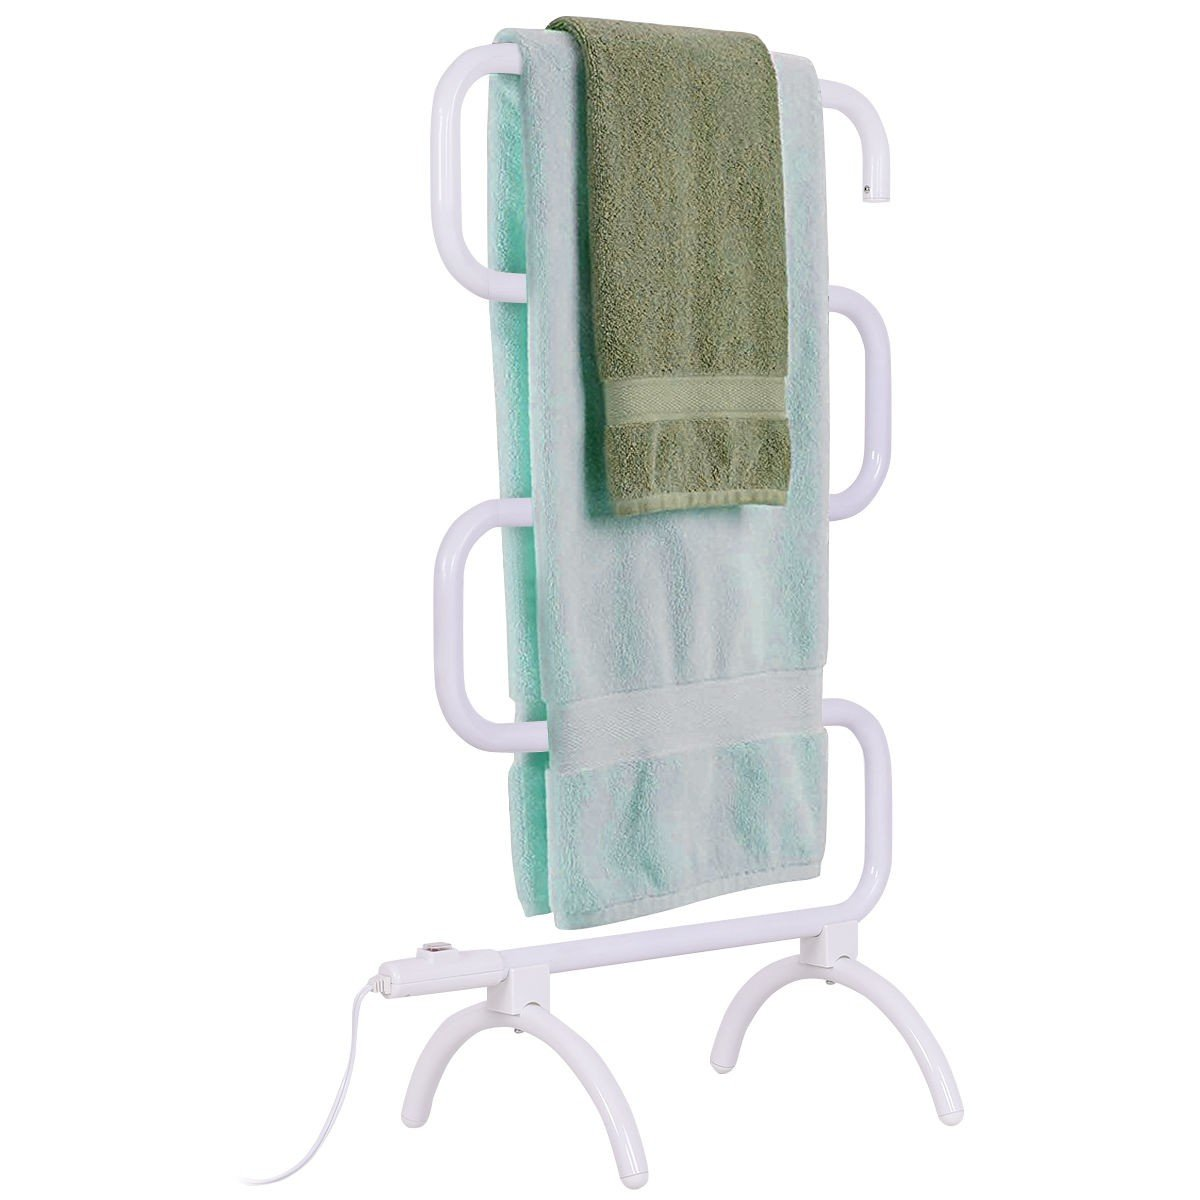 MD Group Towel Warmer Drying Rack Wall Mounted 100W Electric Bar Heated Holder Freestanding by MD Group